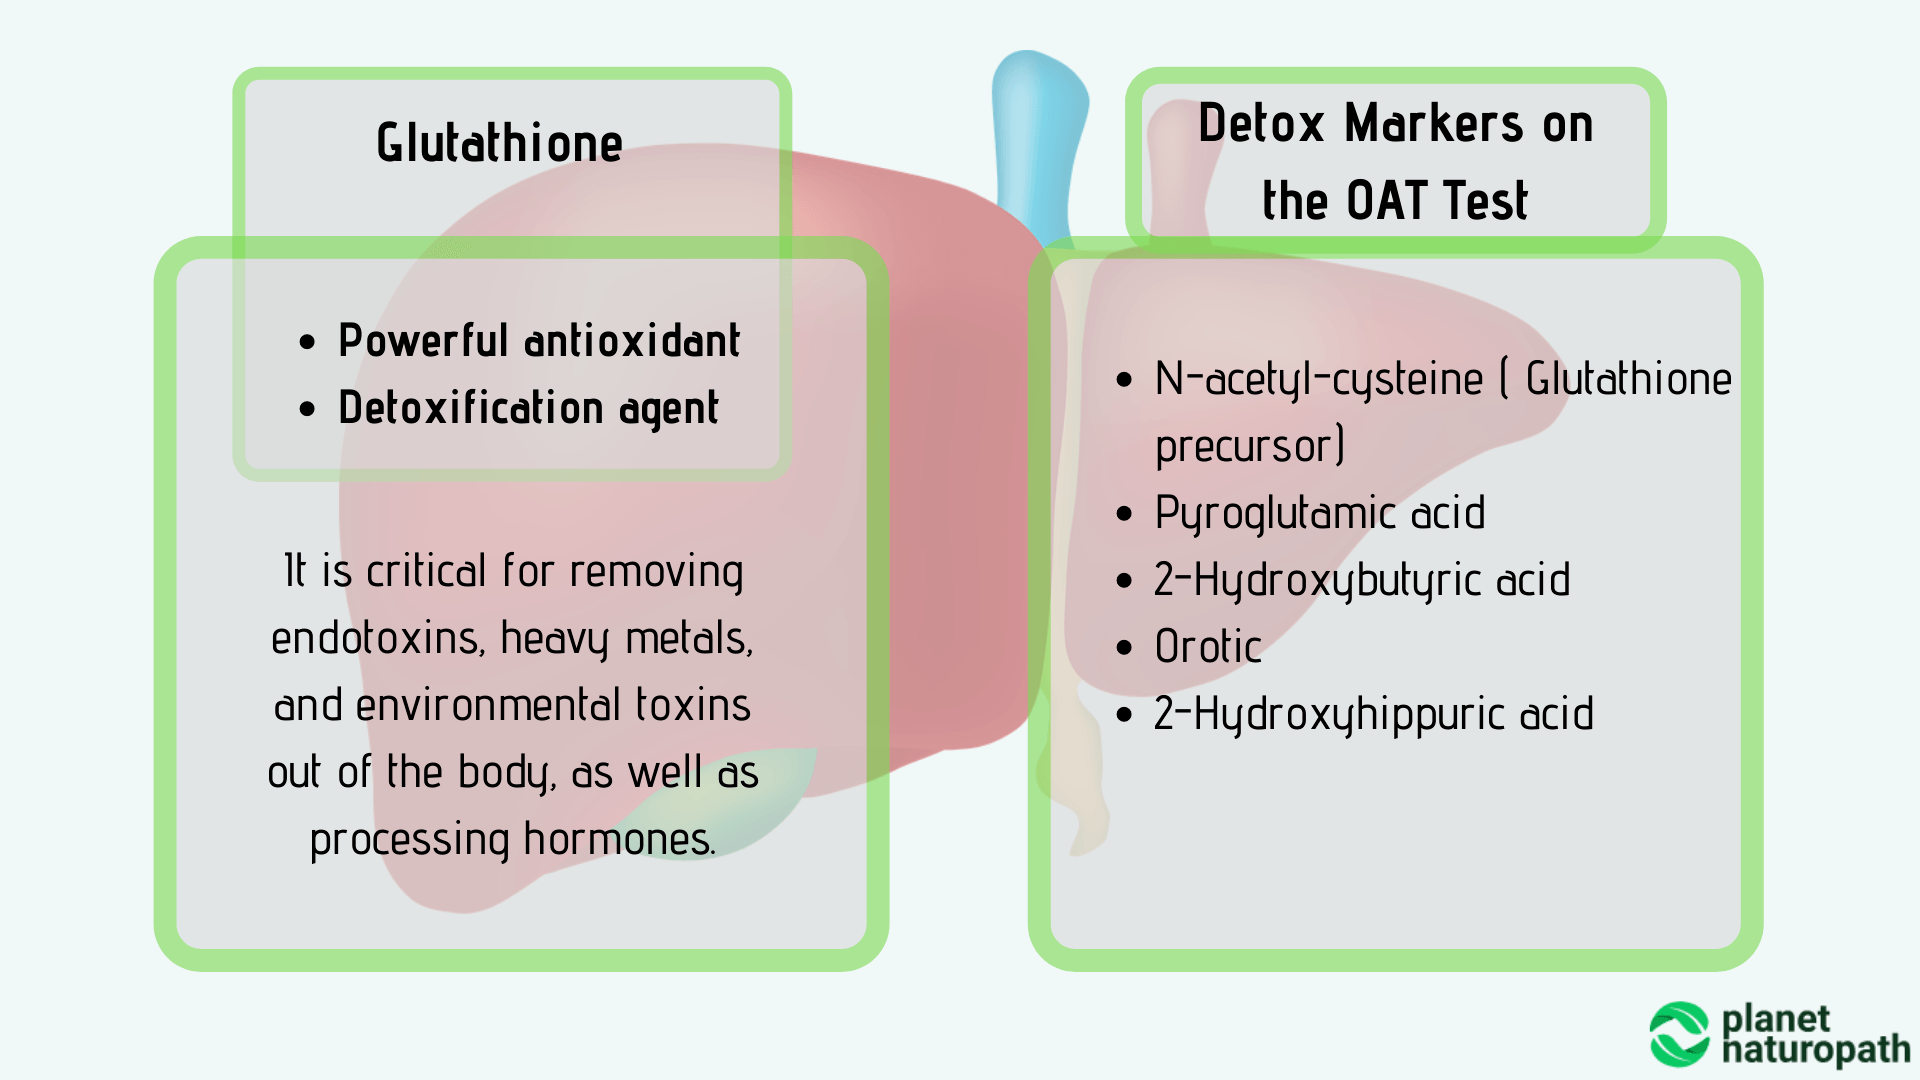 Detox-Markers-on-the-OAT-Test